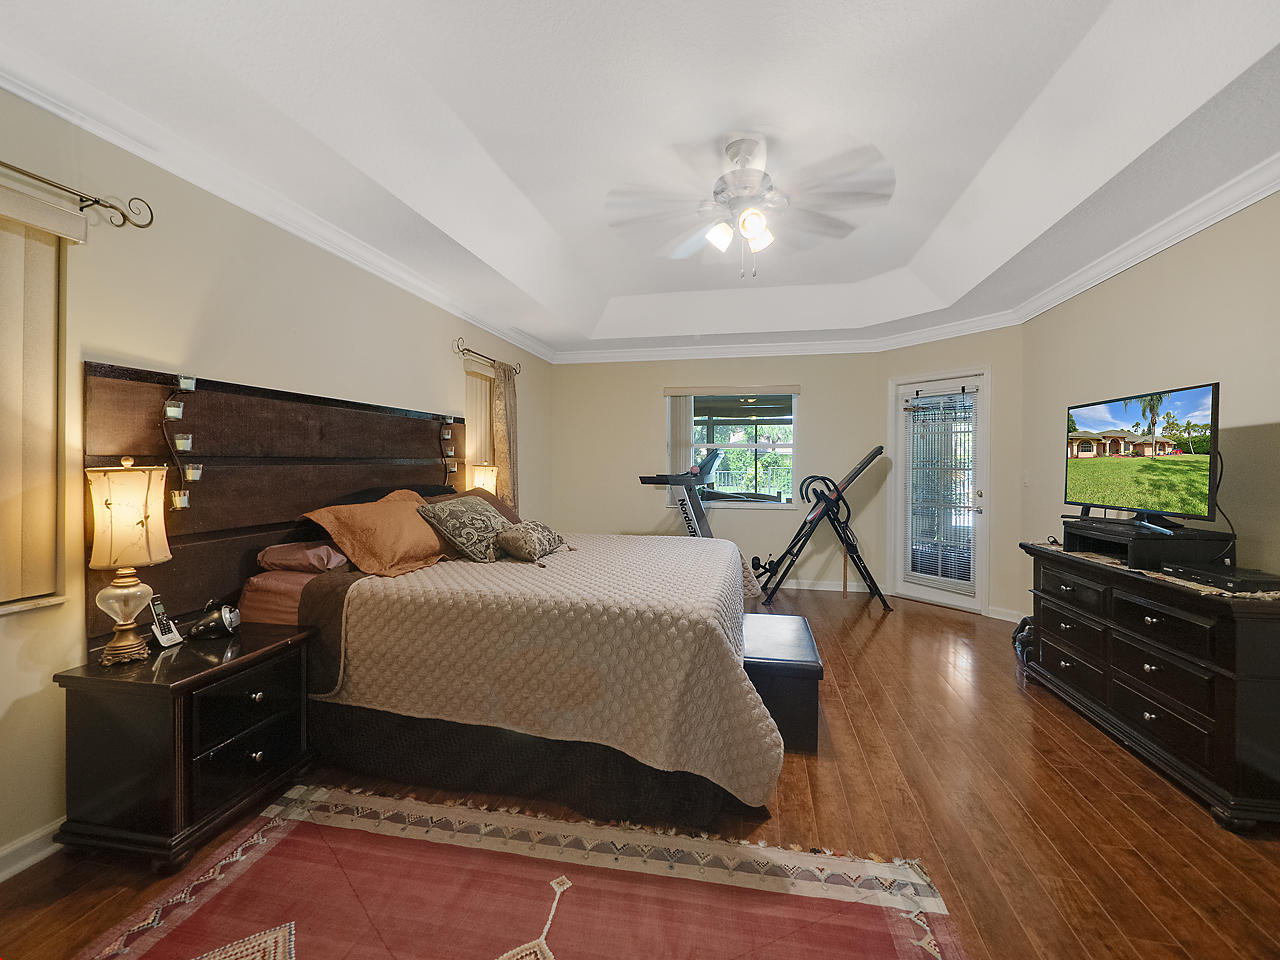 BREEZY ACRES HOMES FOR SALE